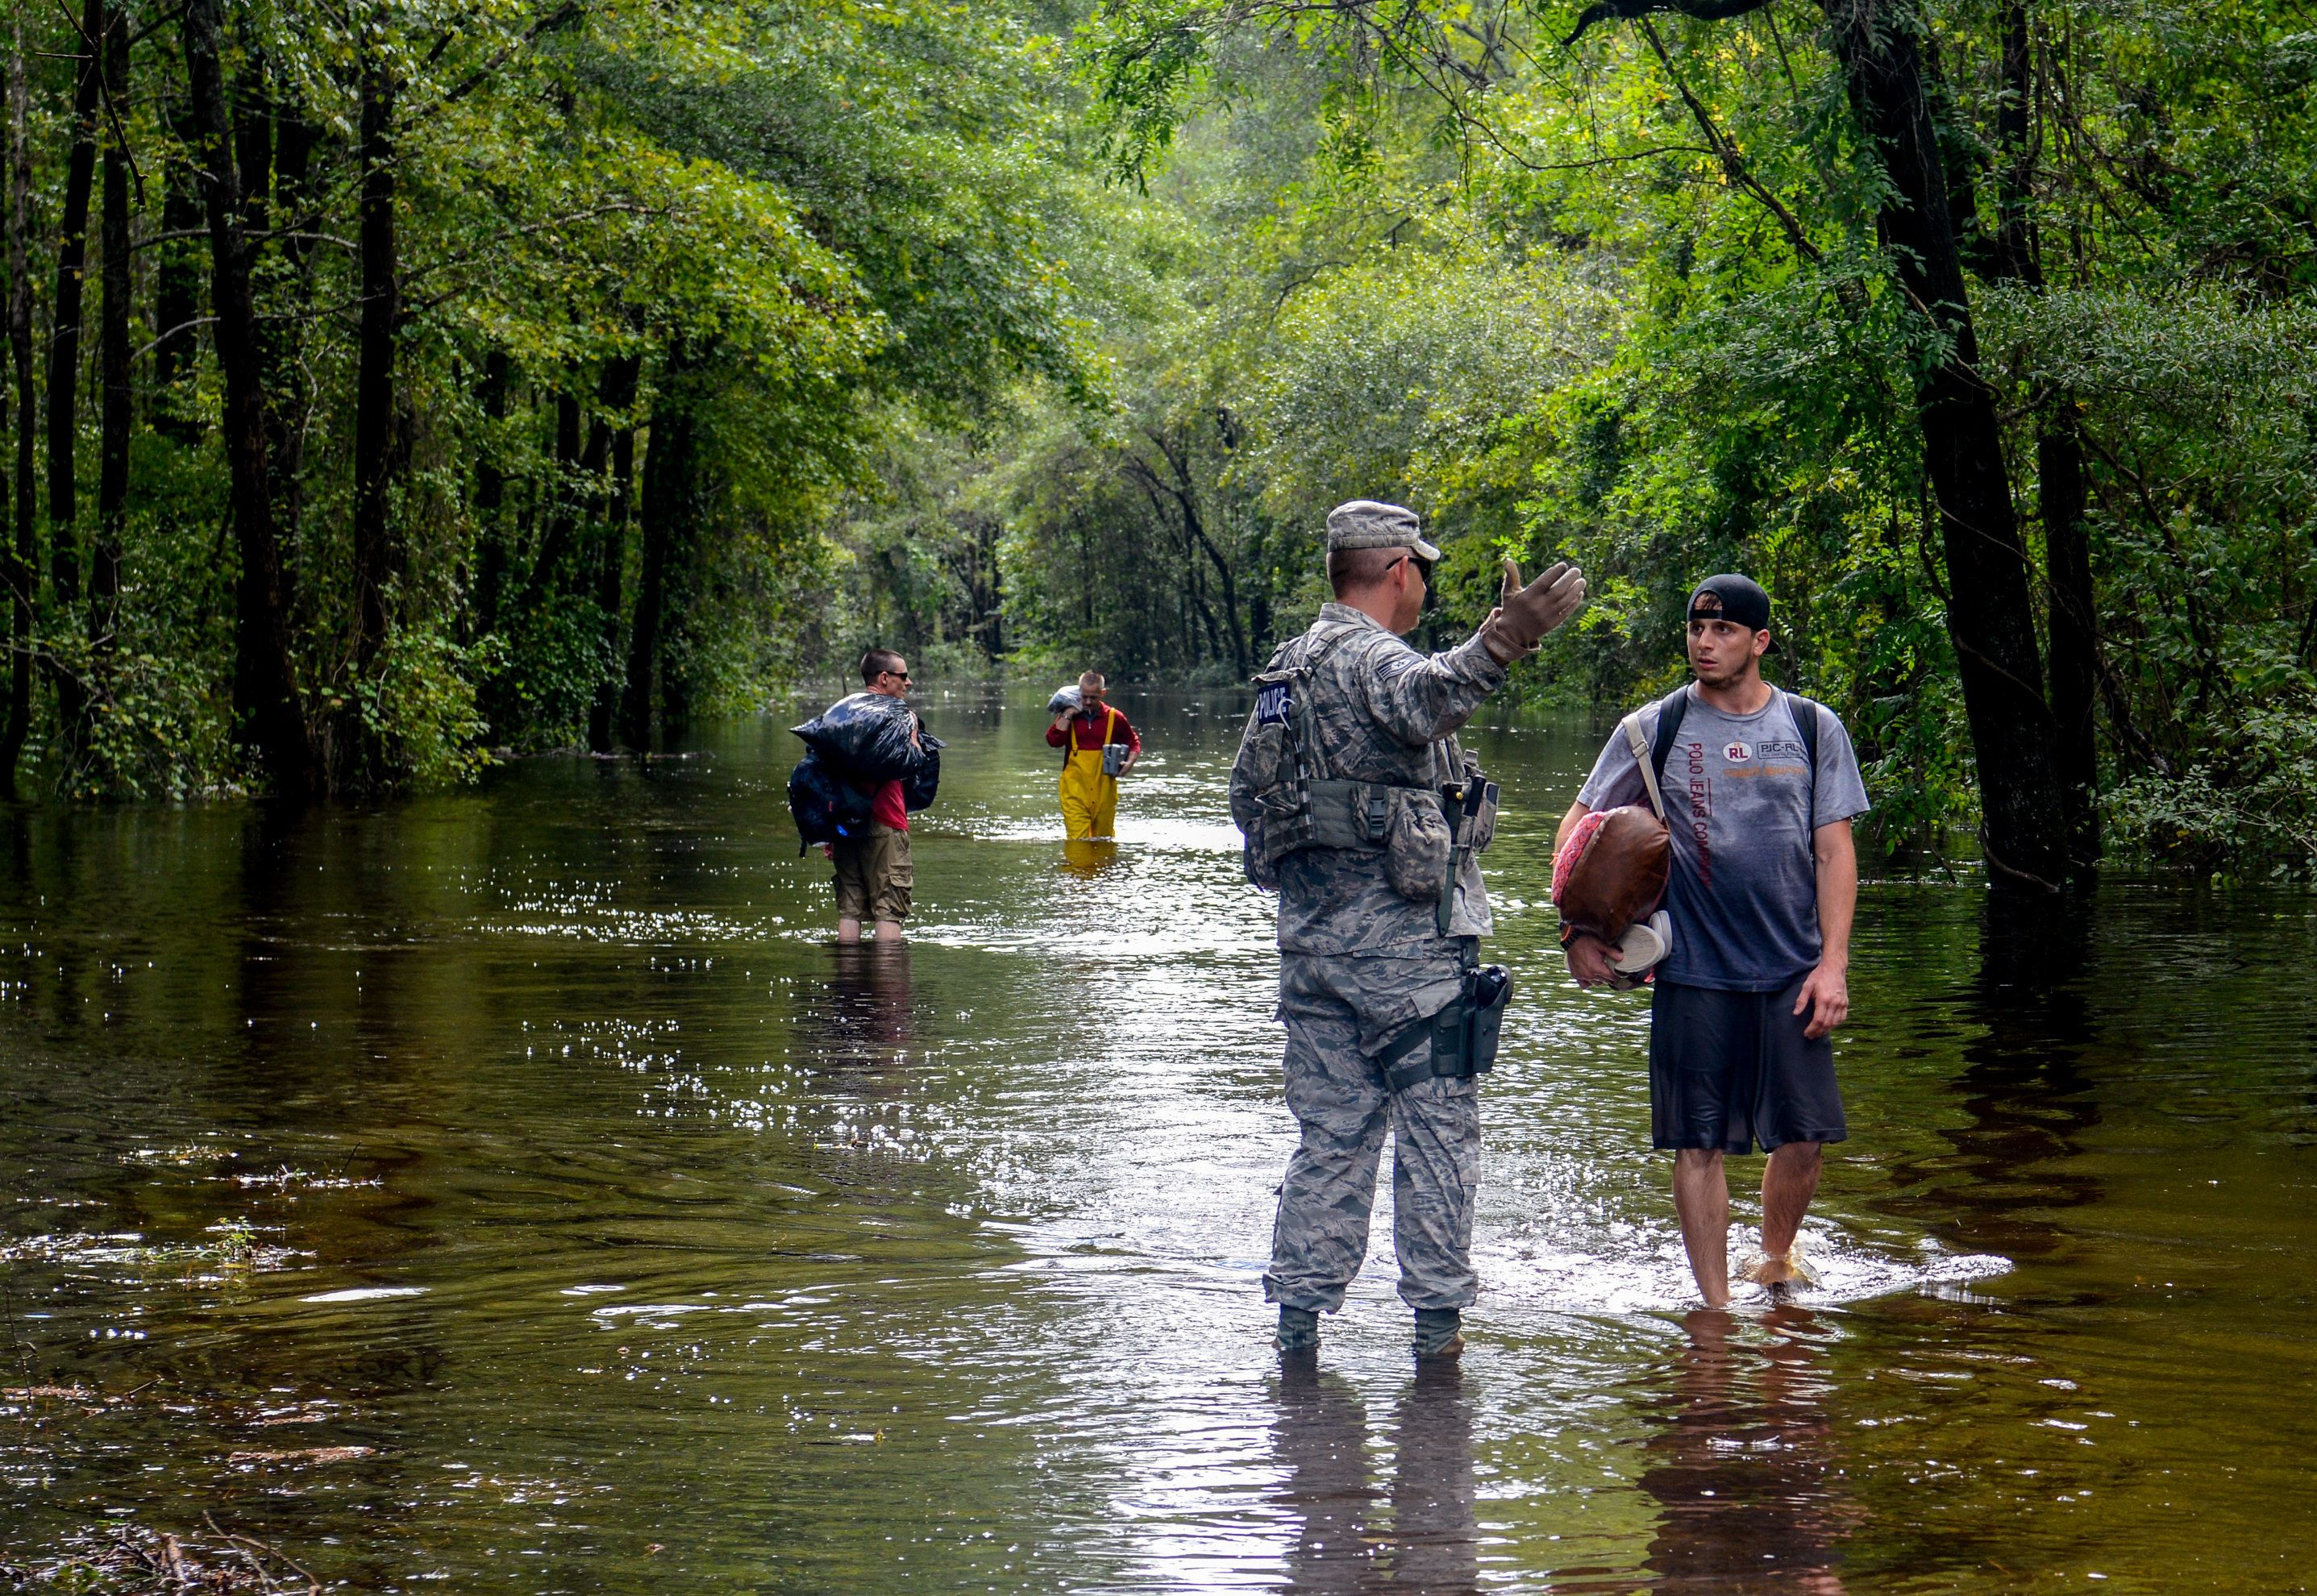 A U.S. Air Force member assigned to the South Carolina Air National Guard assists citizens during evacuation efforts after Hurricane Florence hit in September 2018.